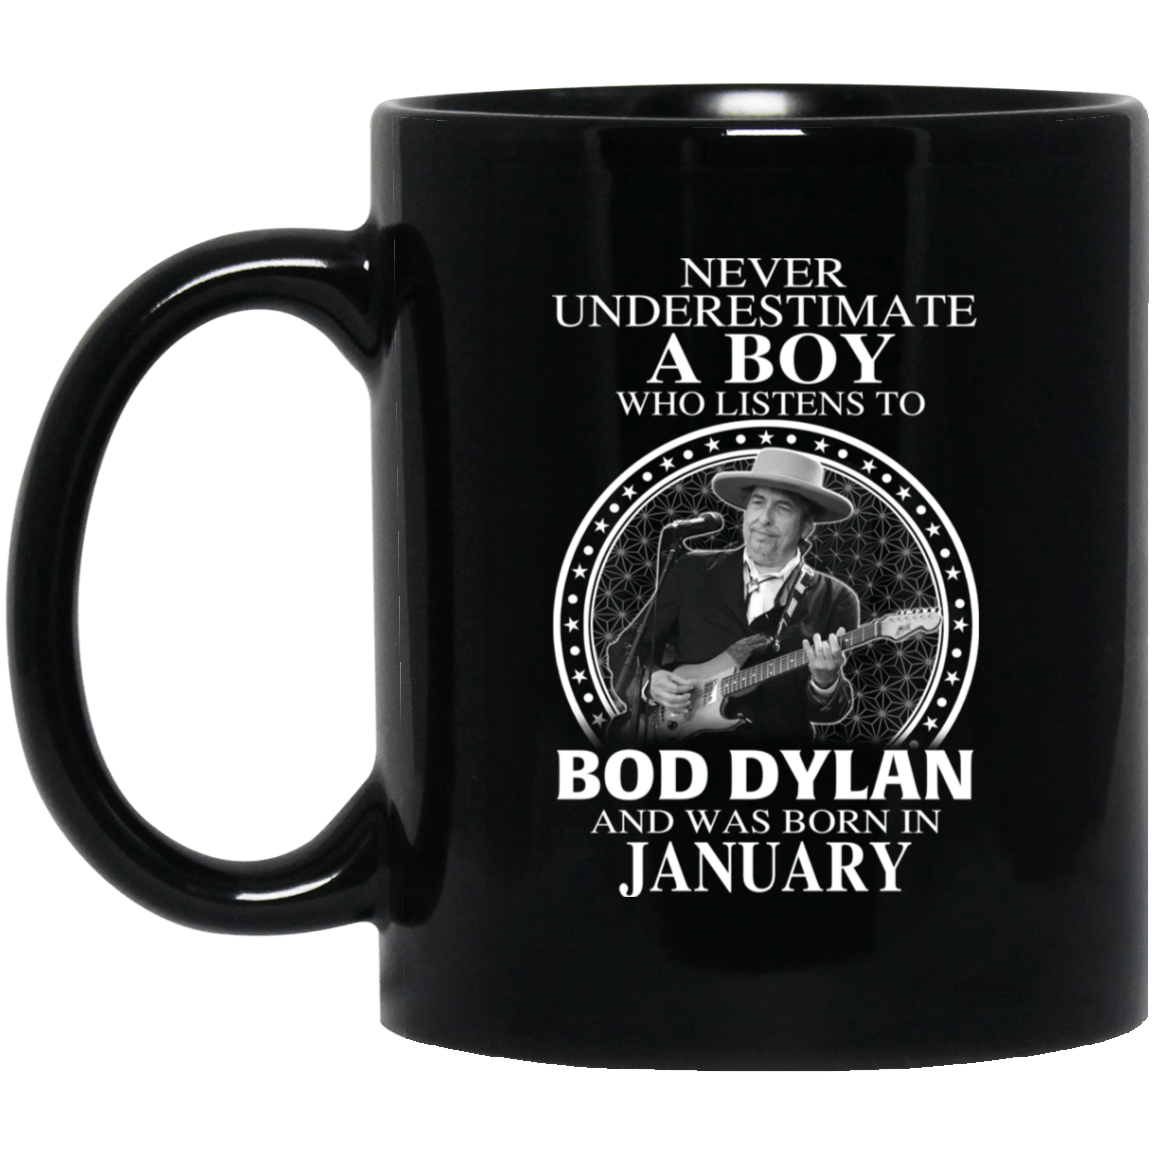 A Boy Who Listens To Bob Dylan And Was Born In January Mug 1065-10181-76153794-49307 - Tee Ript